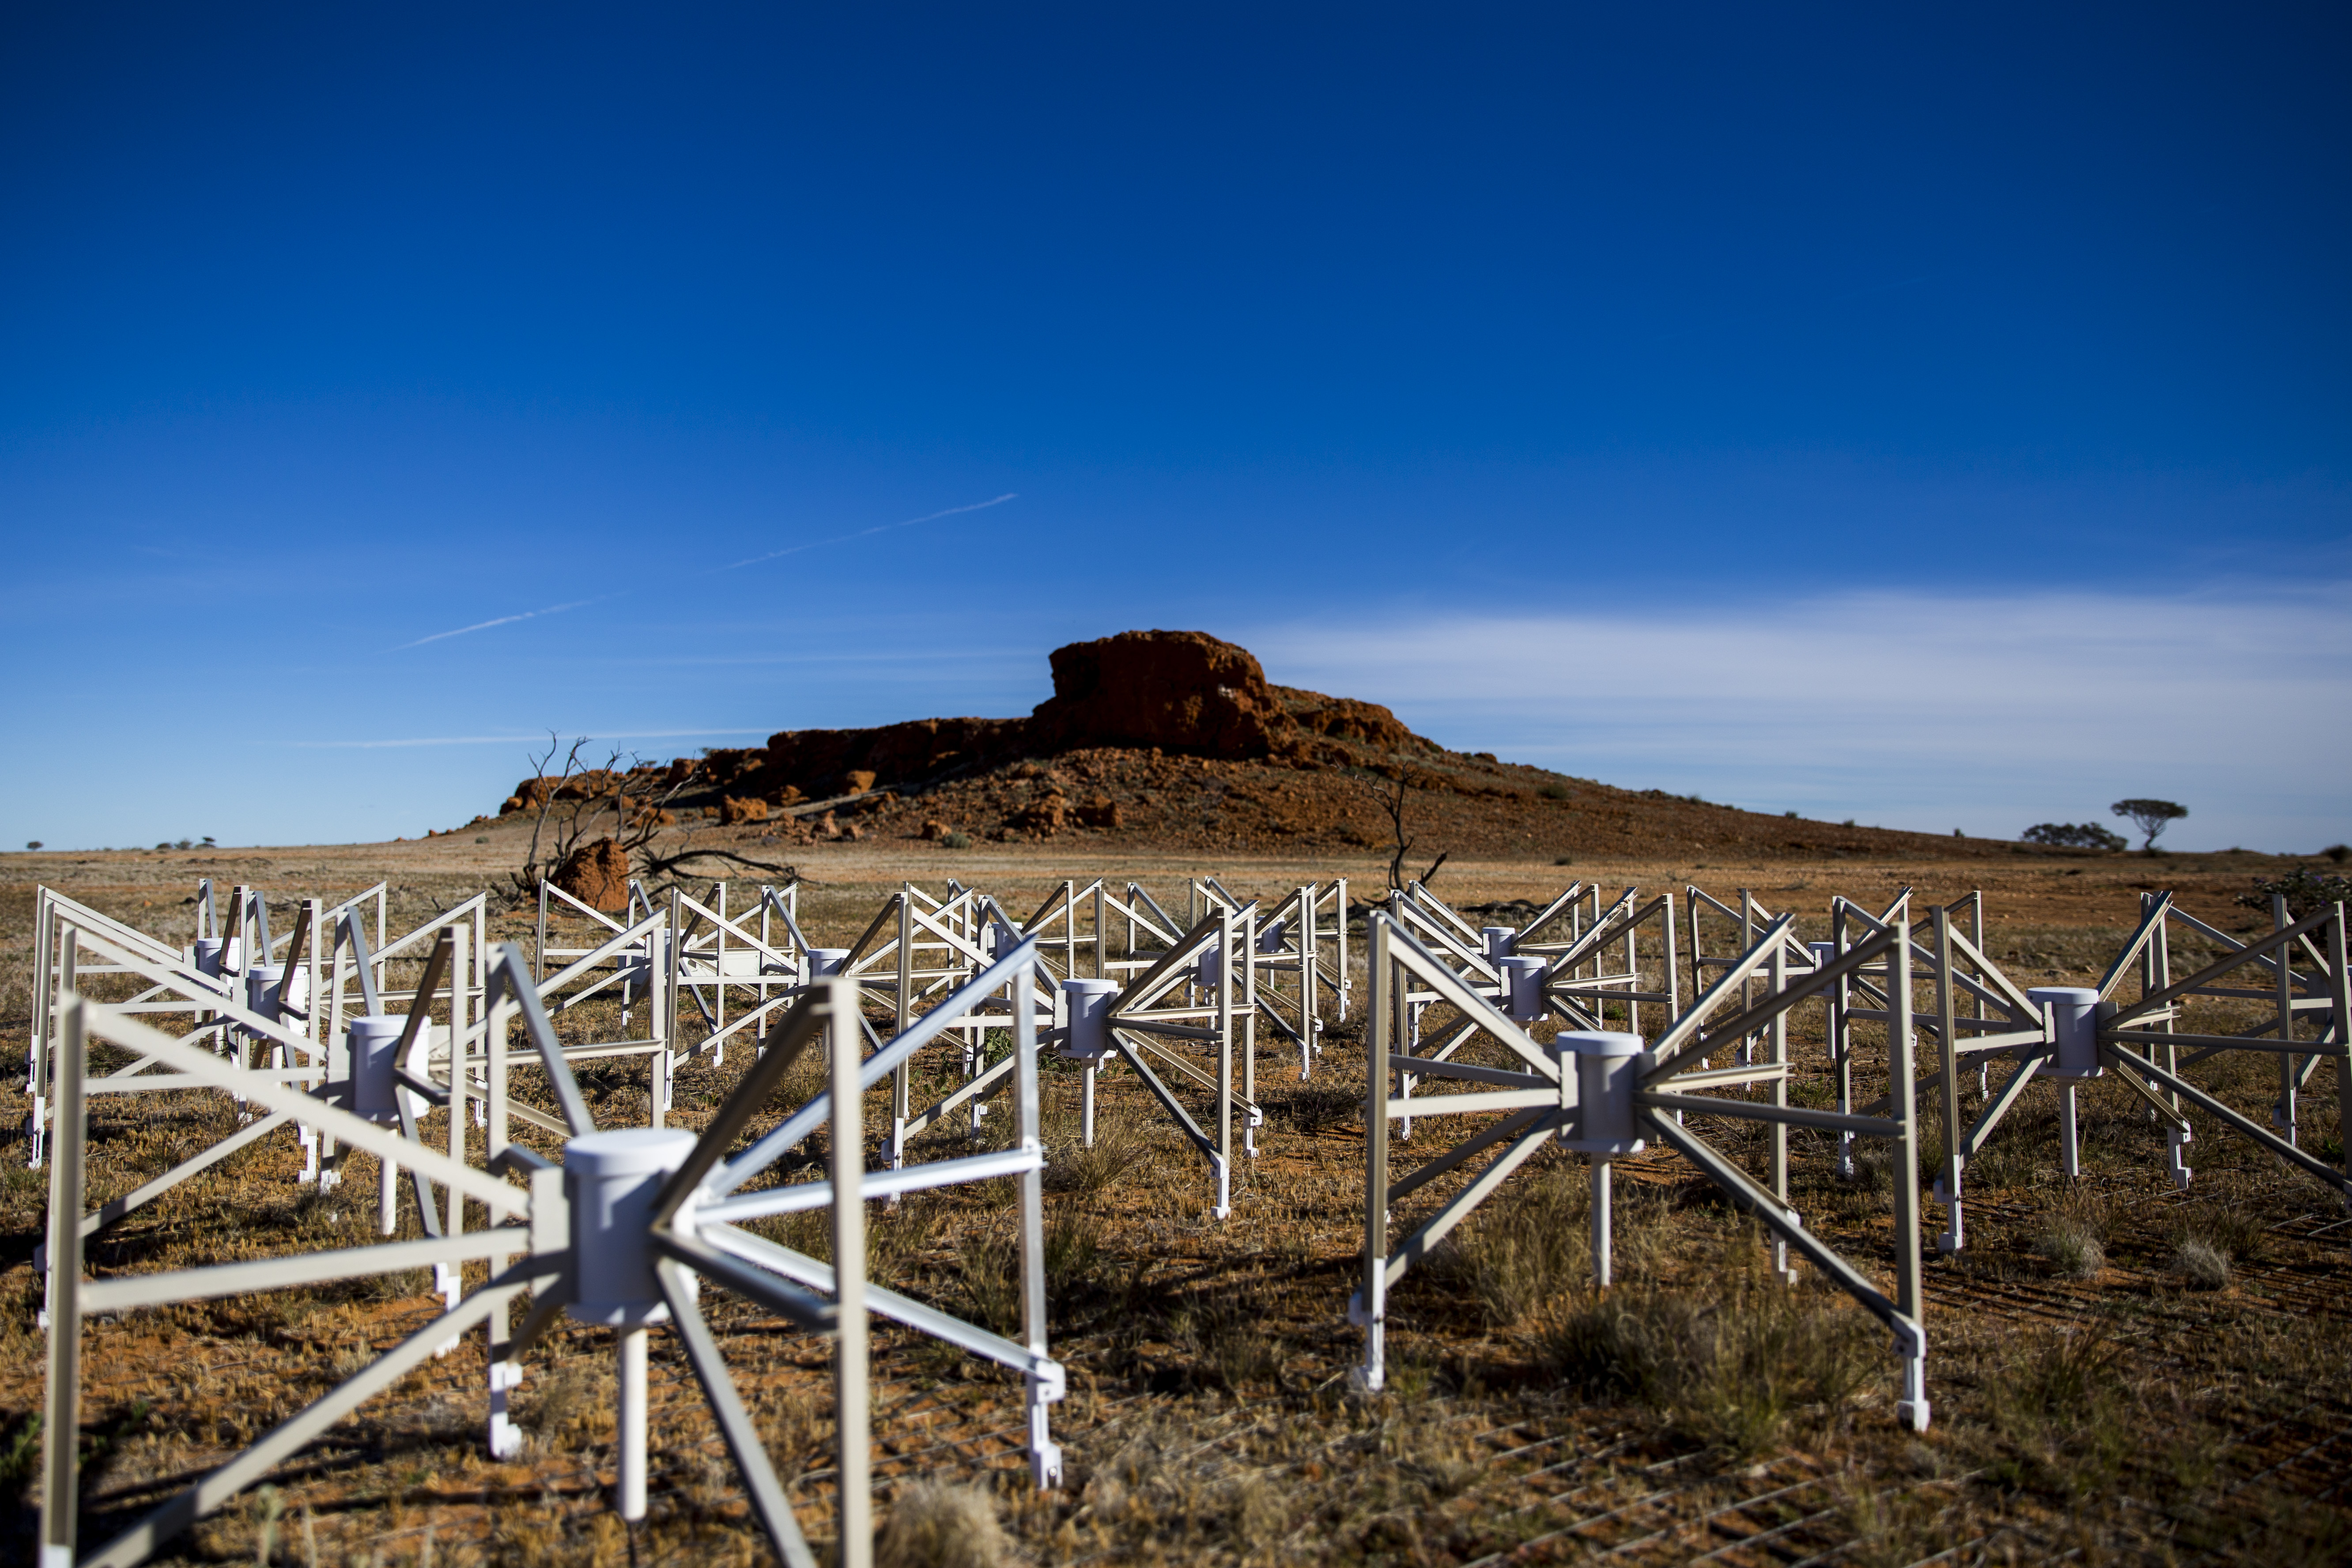 spider-like dipole antennae sitting on mesh in the red desert with a small mountain off in the distance.